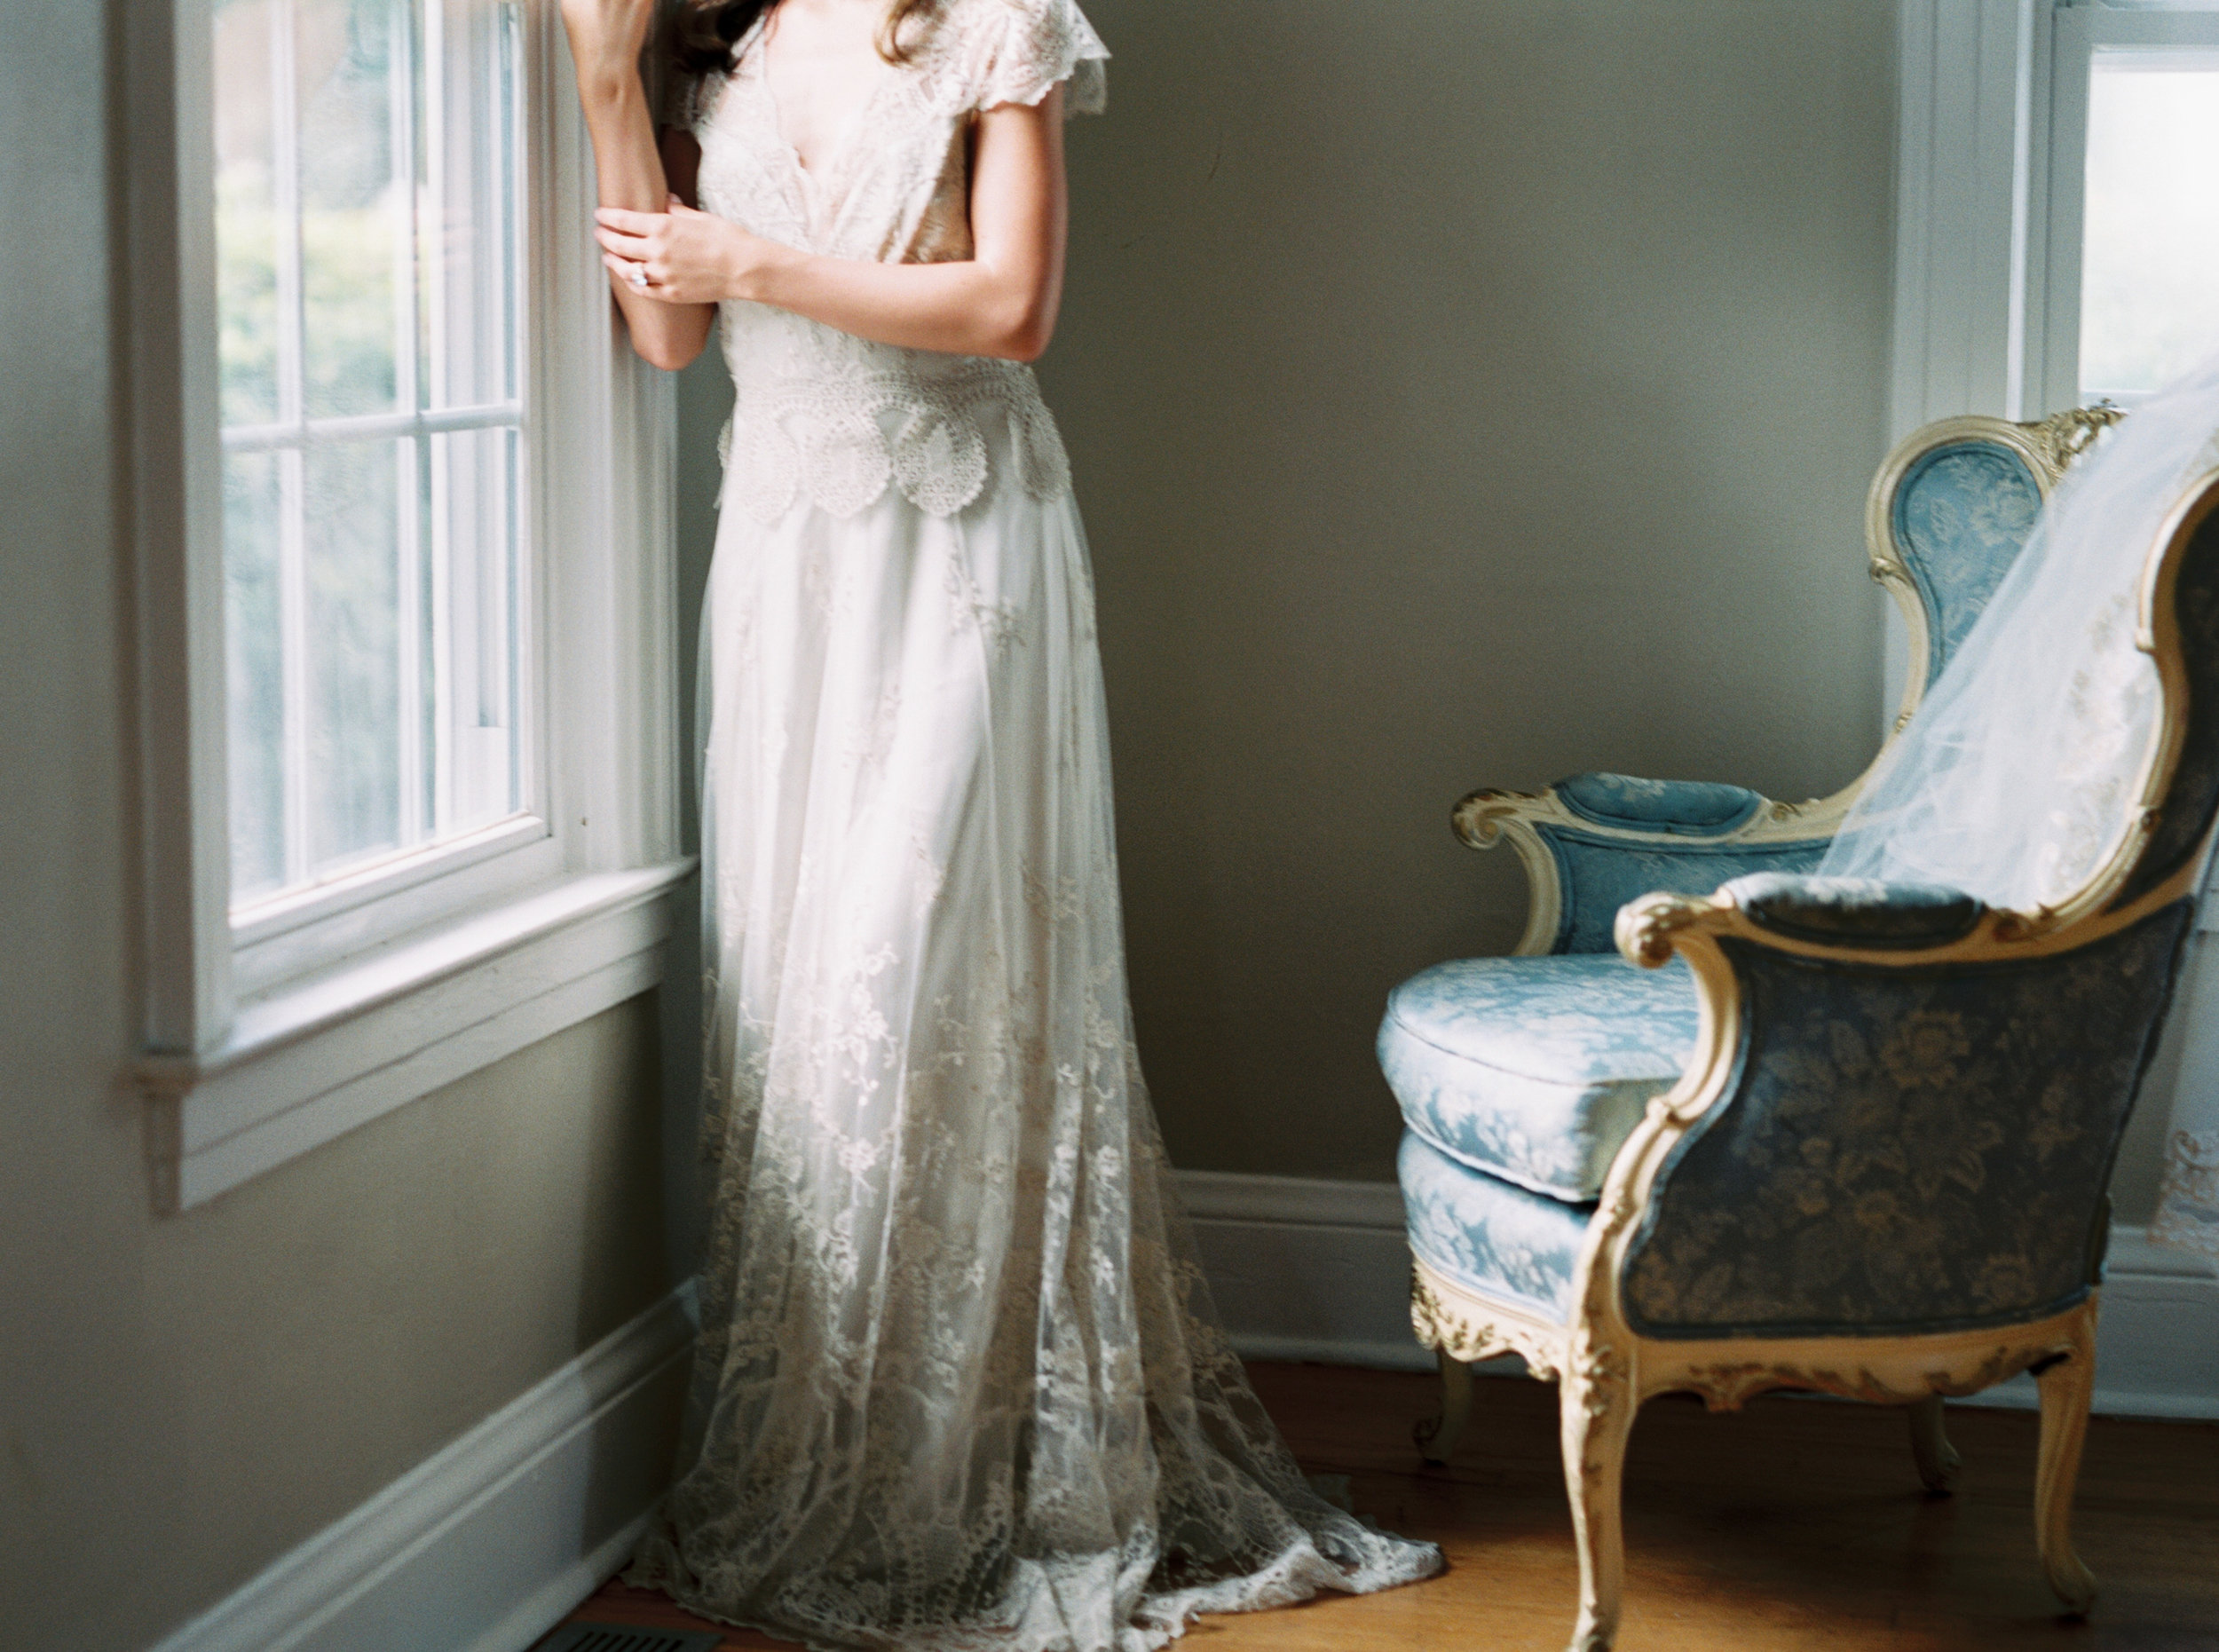 the cypress grove estate house in orlando florida, styled wedding bridal photo in lace dress